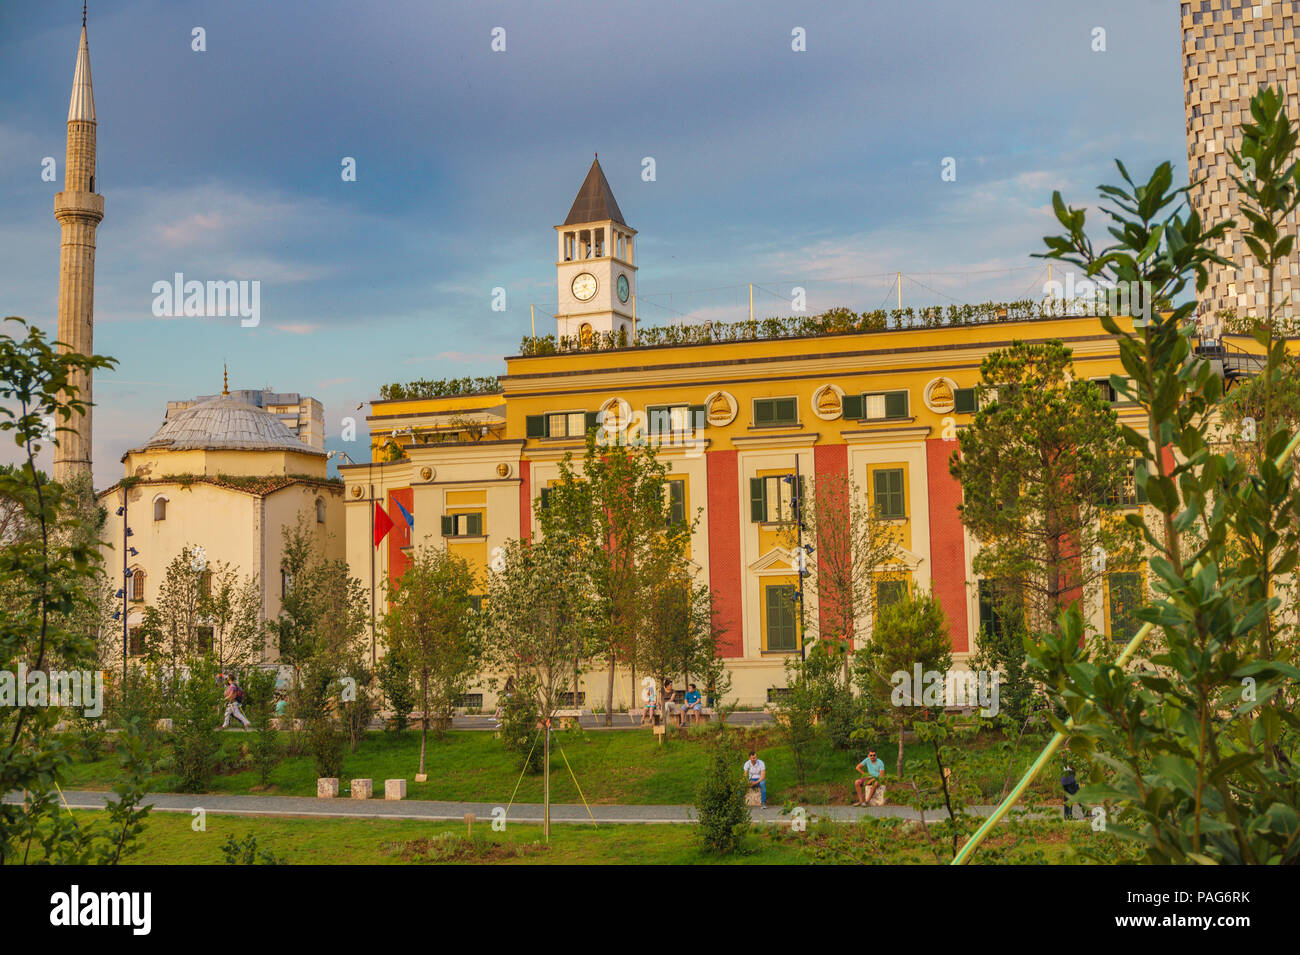 The City Hall of Tirana, Albania located in the Skanderbeg Square. Tirana is the capital of Albania - Stock Image